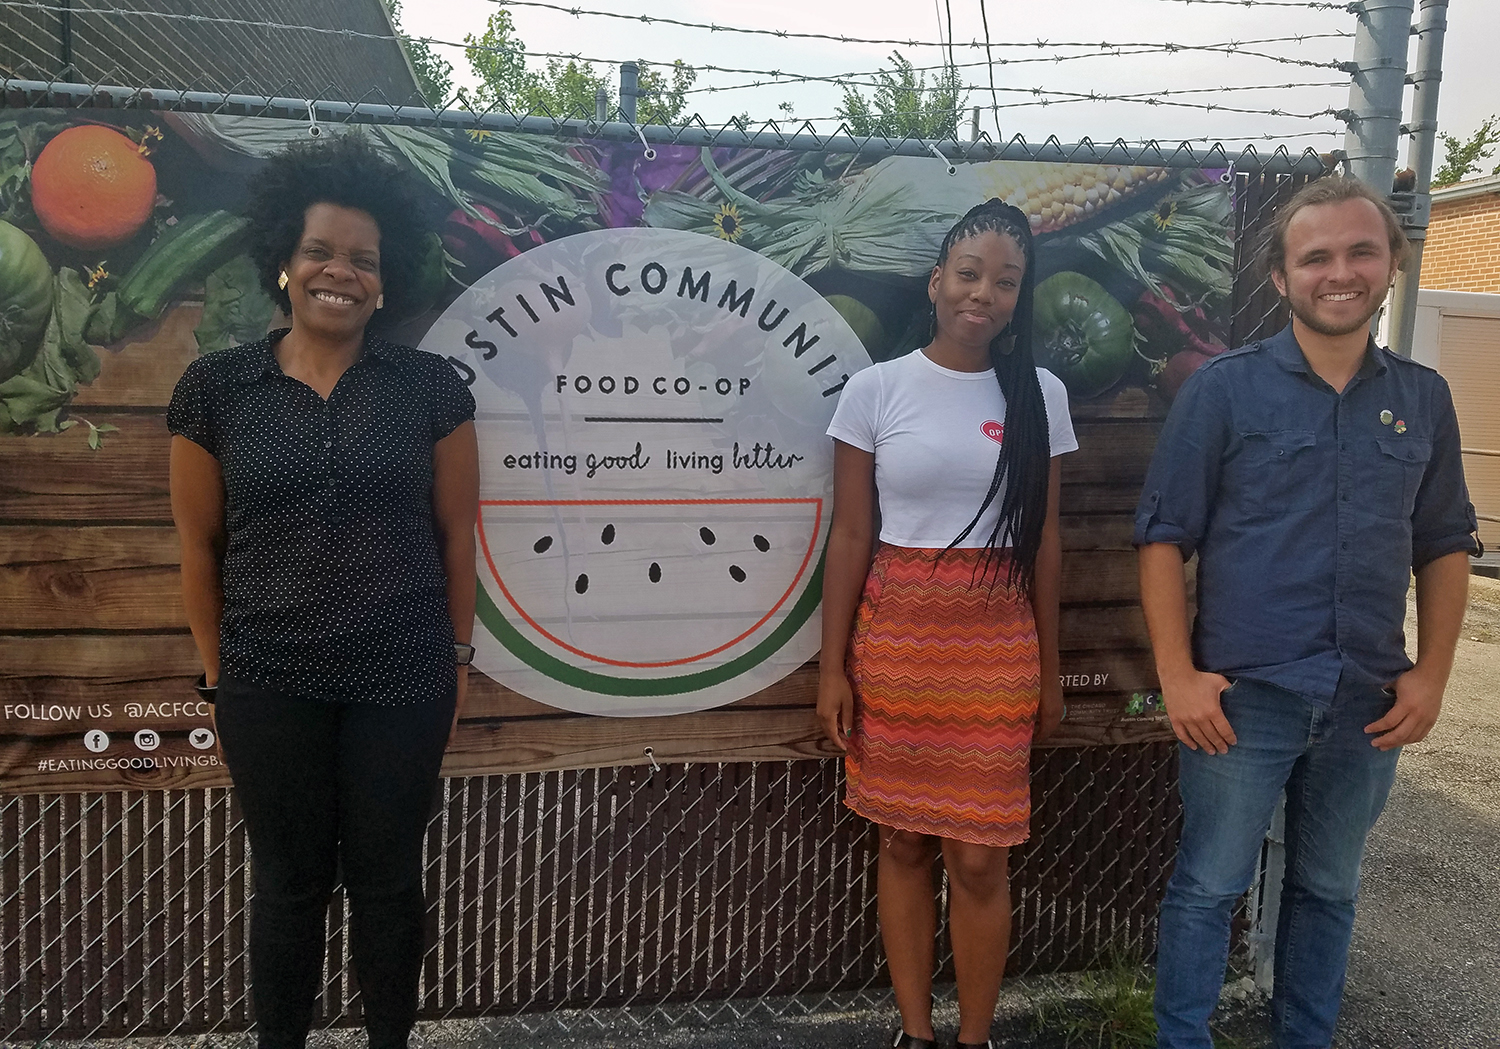 The nonprofit group Austin Coming Together is in the early days of creating the Austin Community Food Co-op, which aims to provide access to fresh produce in a neighborhood lacking healthy food options. From left: Organizers Vanessa Stokes, Briana Shields and Alec Hudson (WBEZ/Monica Eng)